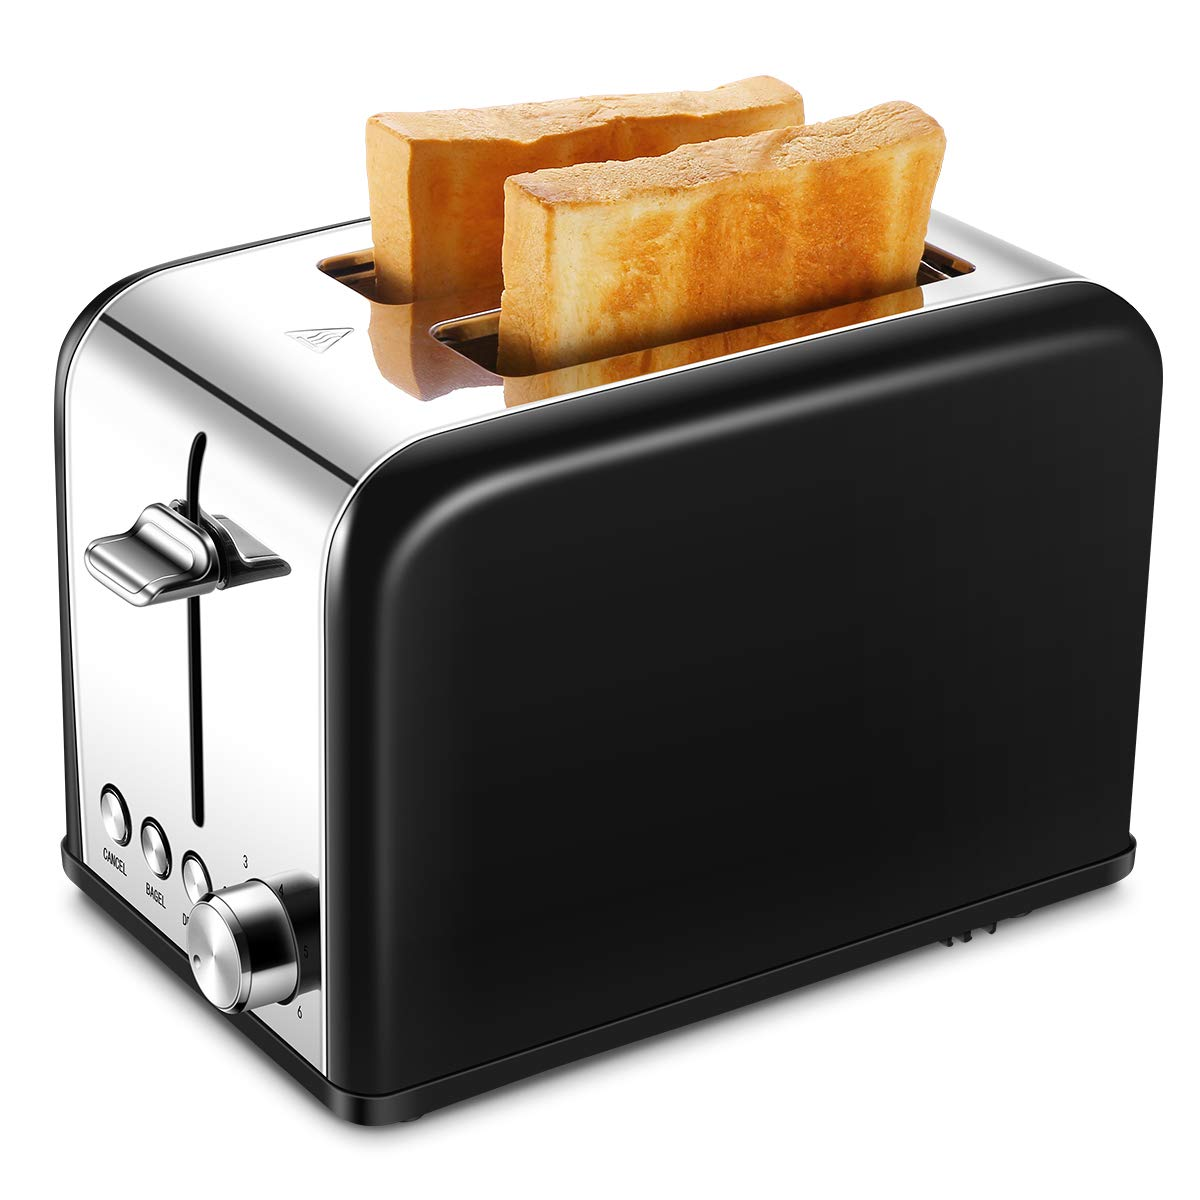 Toaster 2 Slice, Small Wide Slot Black Toasters Two Slice, Stainless Kitchen Toaster for Bagels Bread